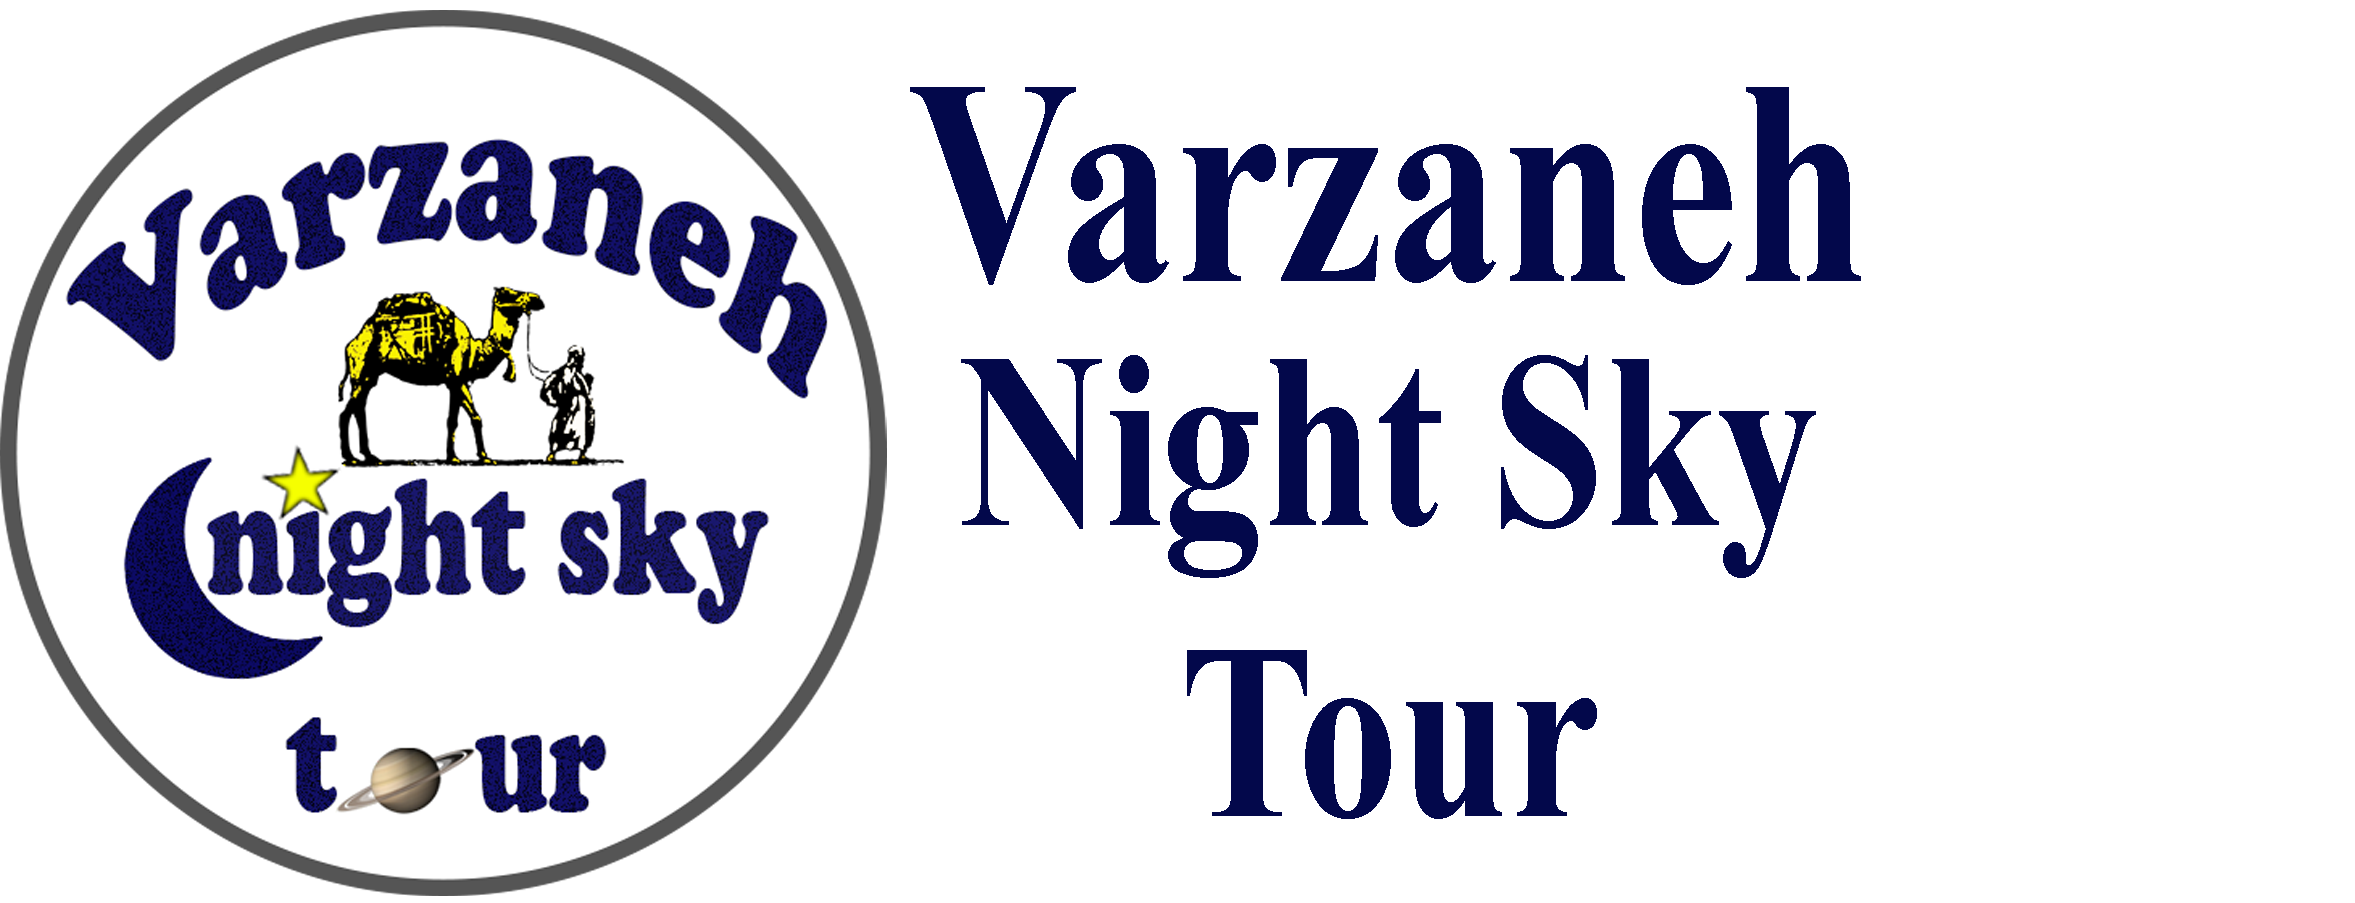 Varzaneh Night Sky Tour